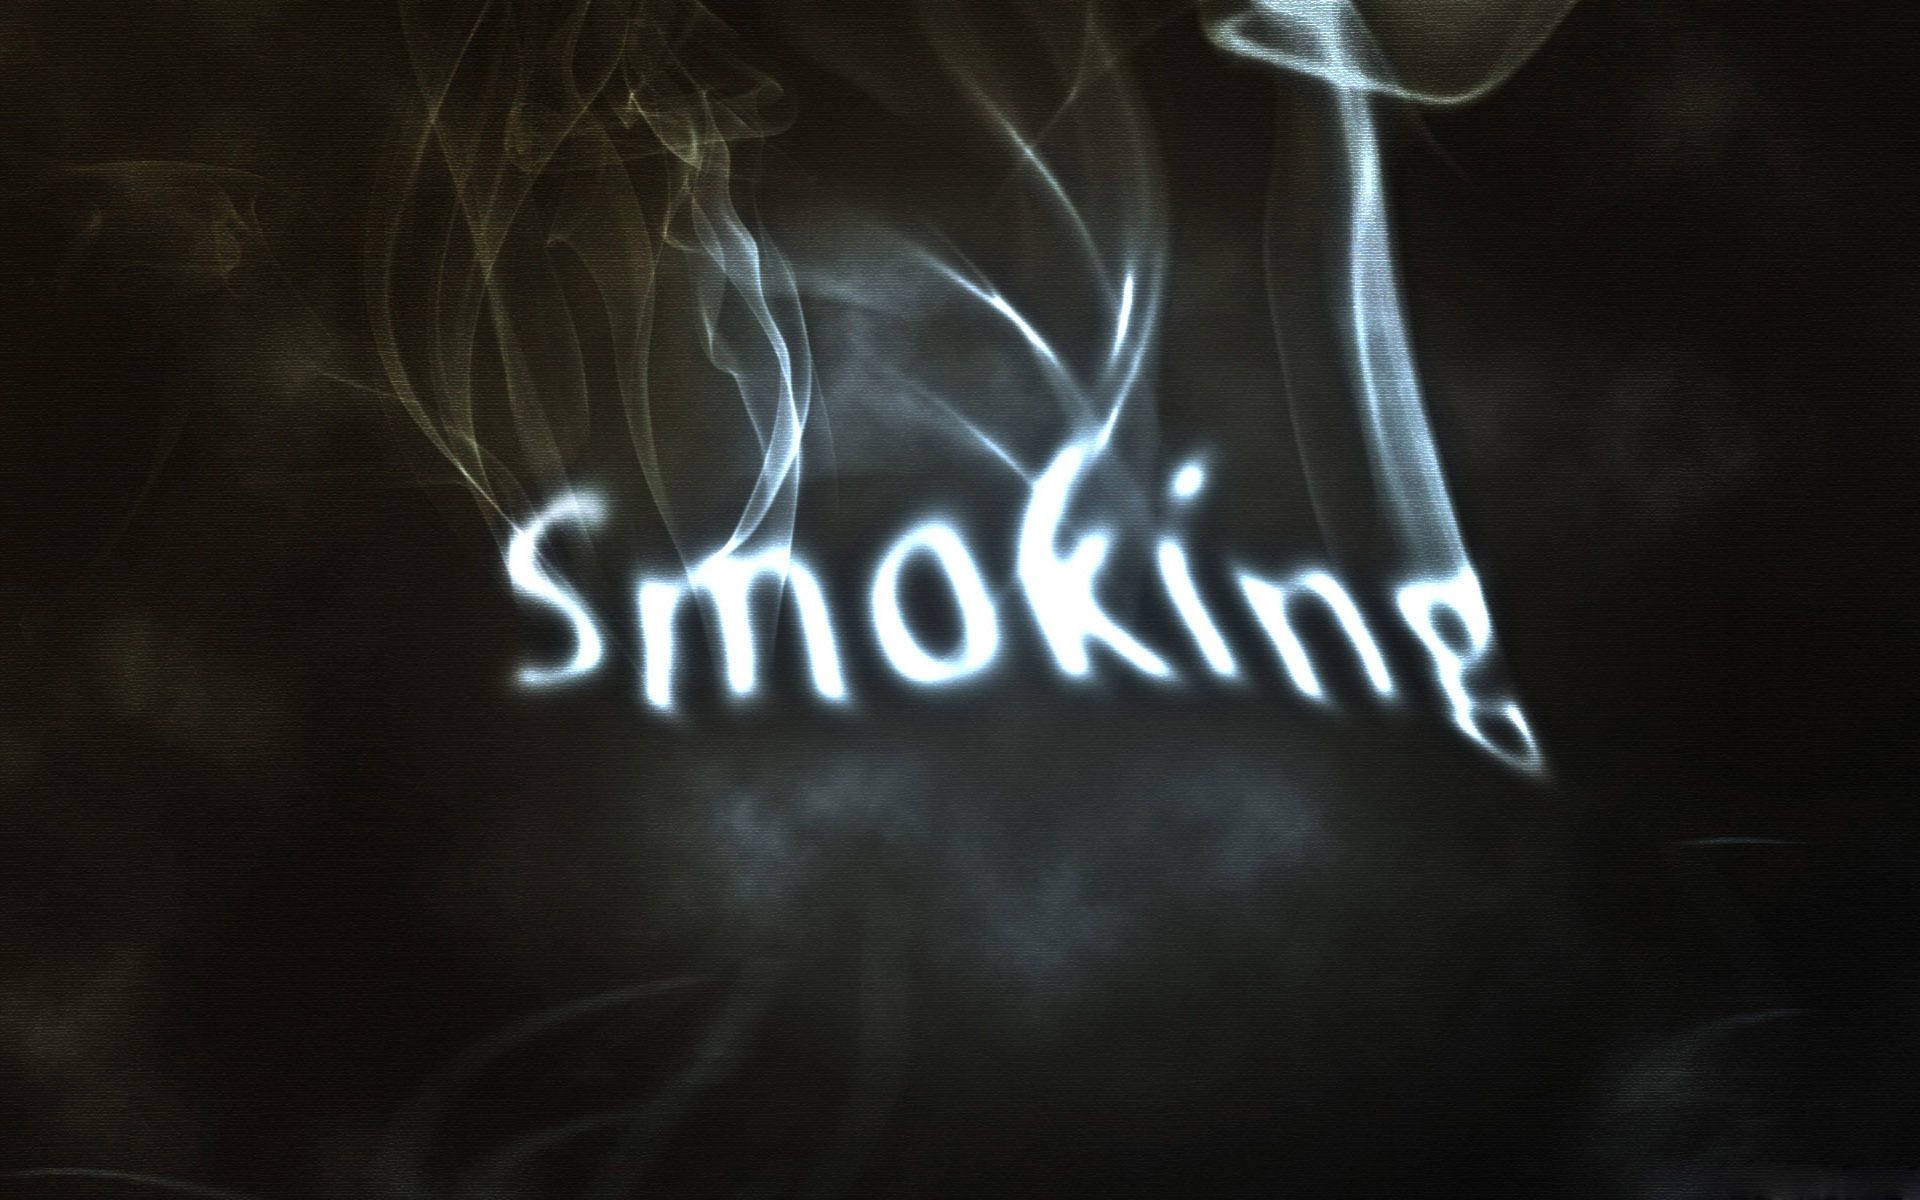 Smoke, Black background, smoking wallpapers and images .